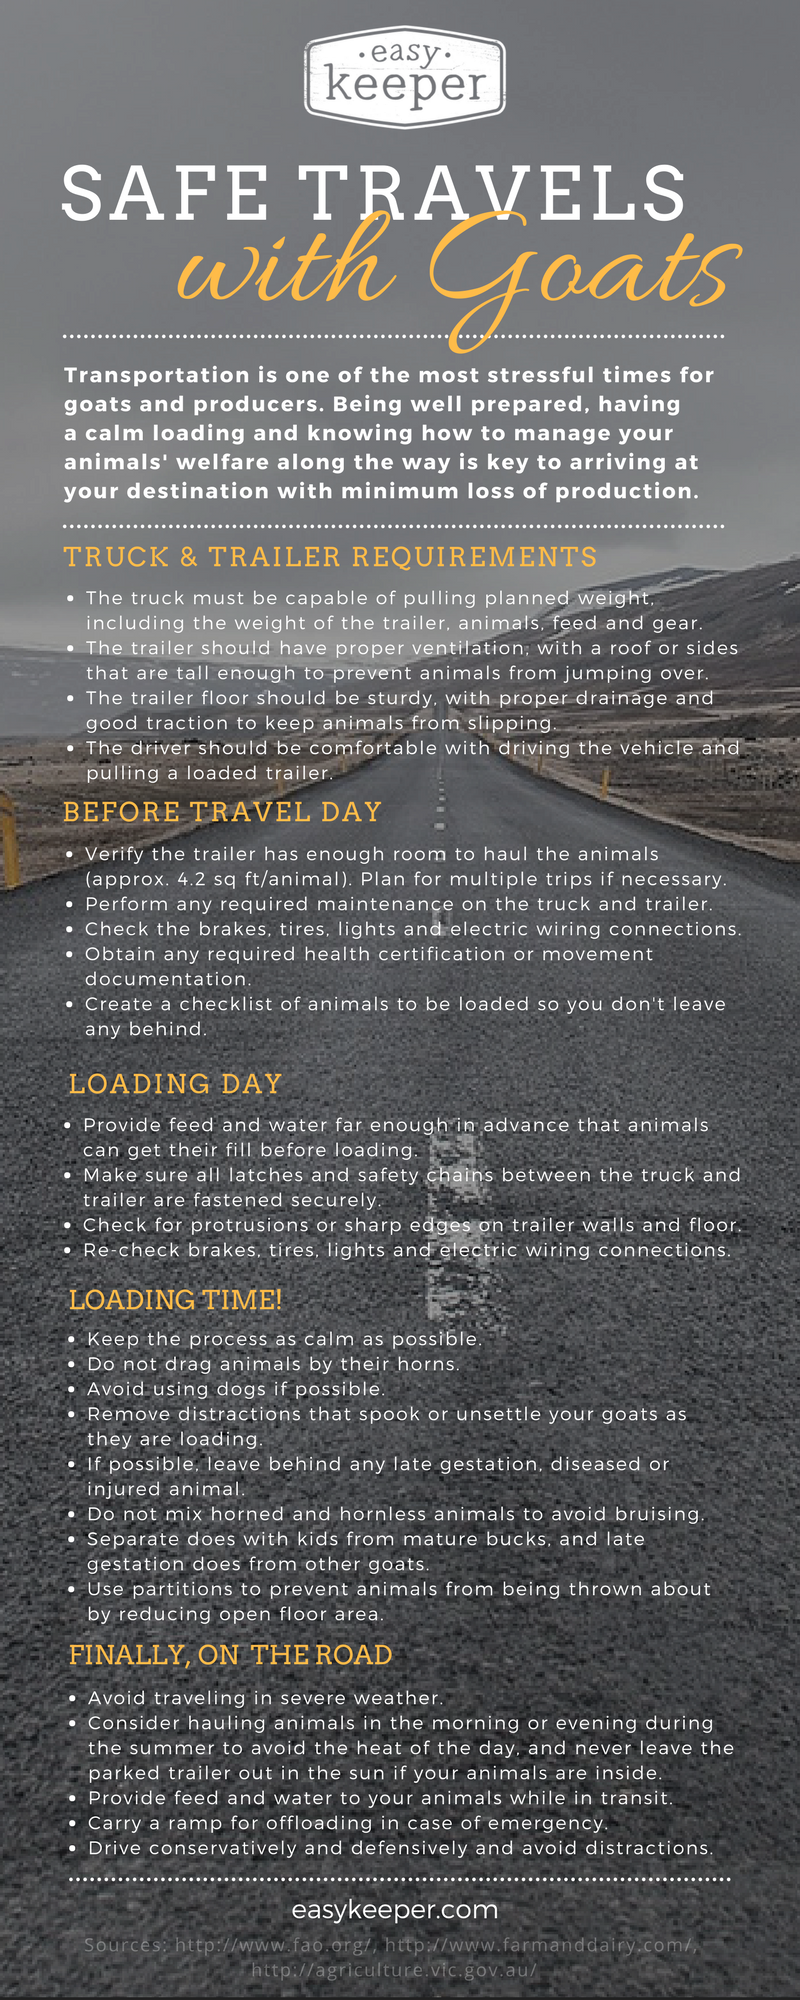 safe travels with goats infographic